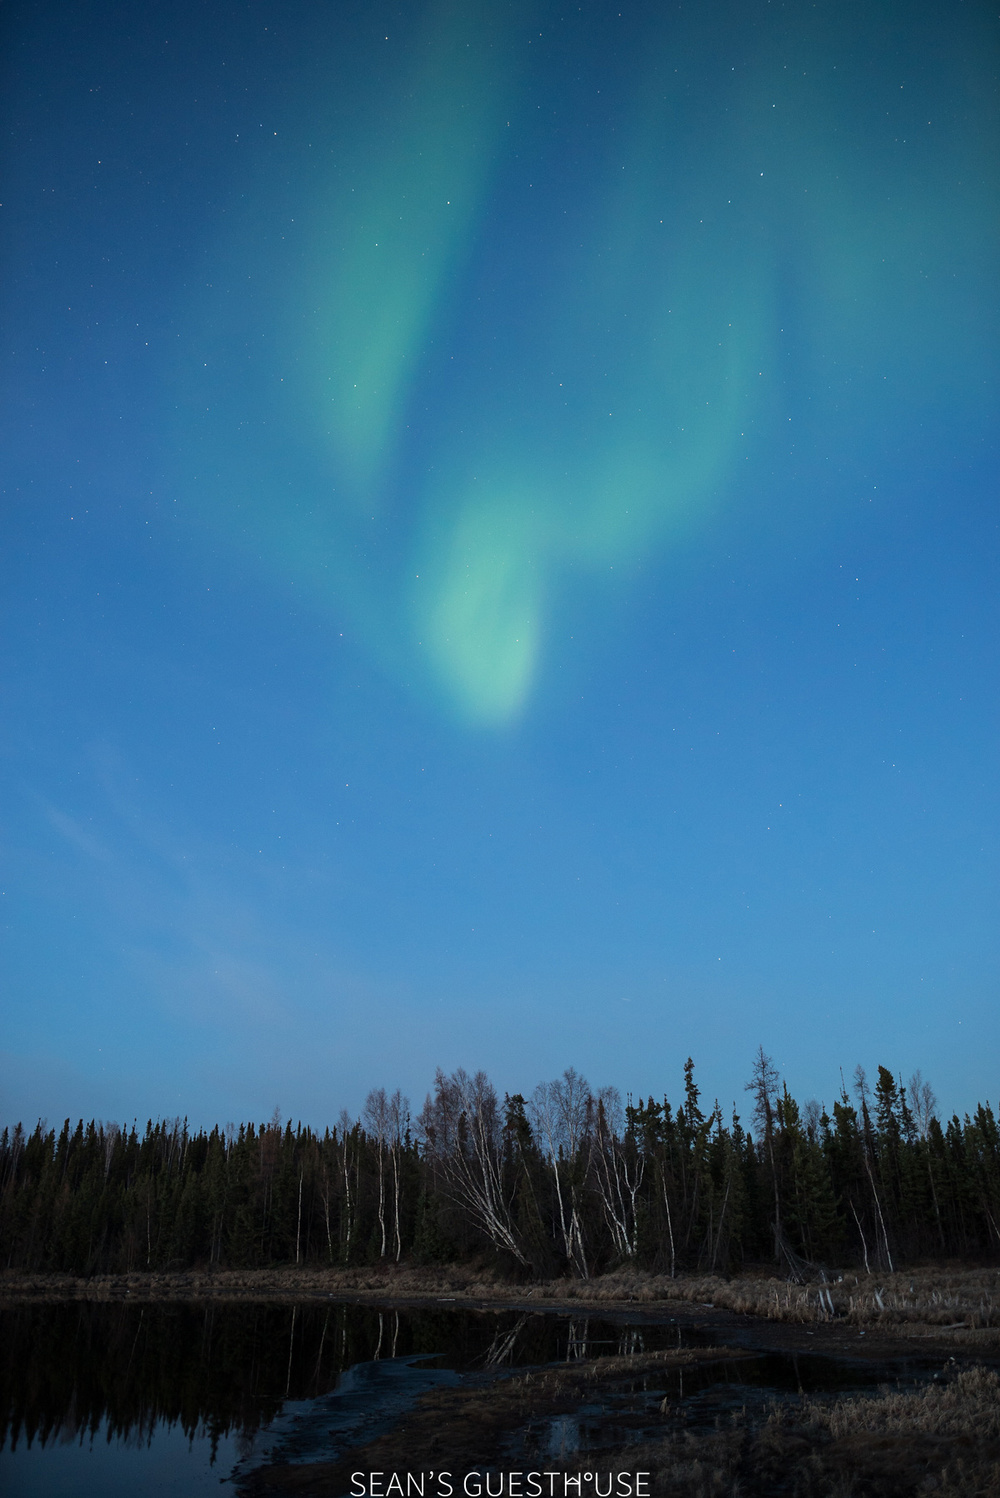 Sean's Guesthouse - Best Place to see the northern lights - Yellowknife Accommodation - 1.jpg